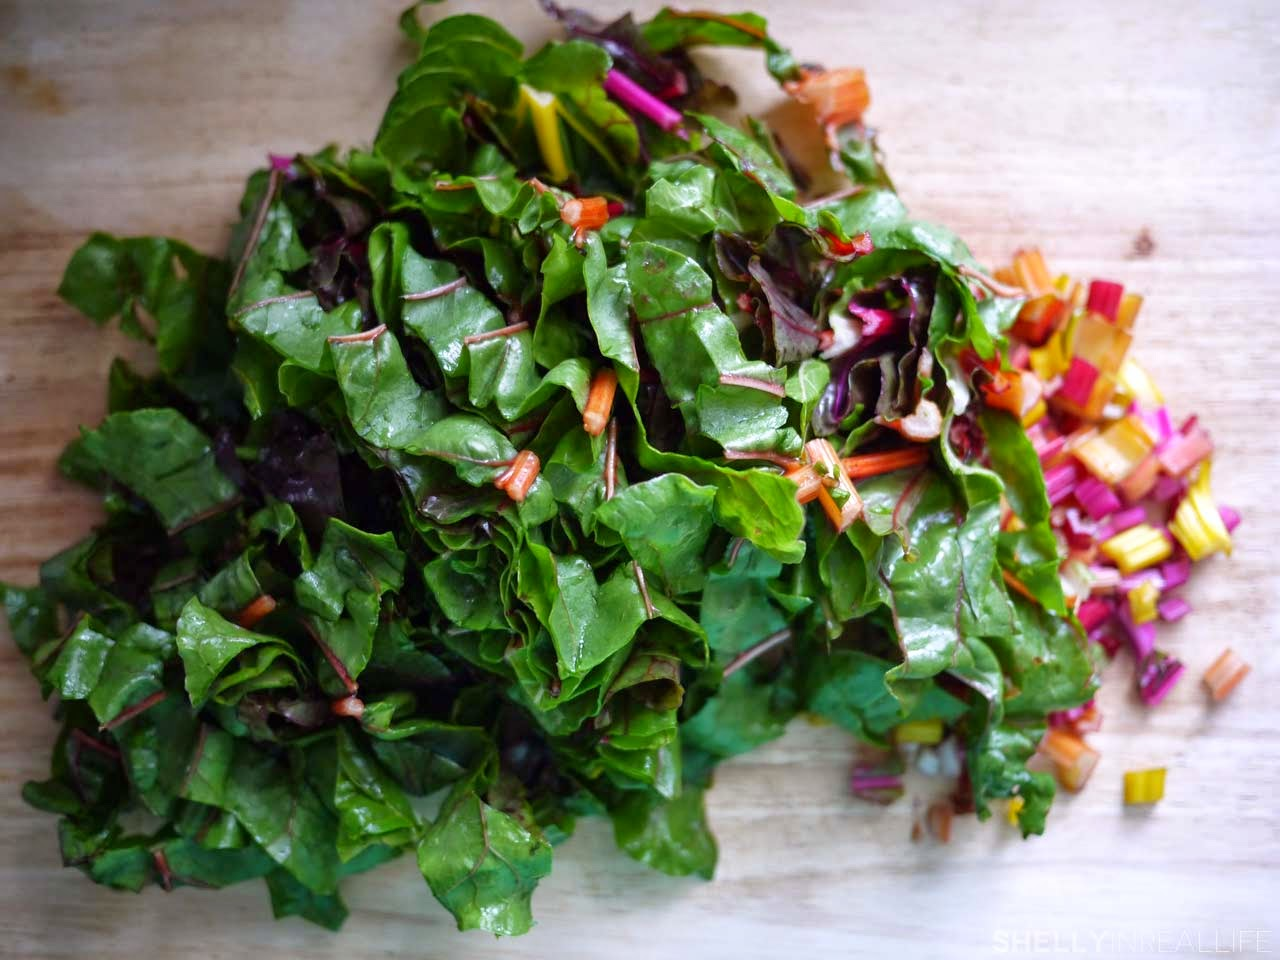 Sautéed Rainbow Swiss Chard - Shelly in Real Life